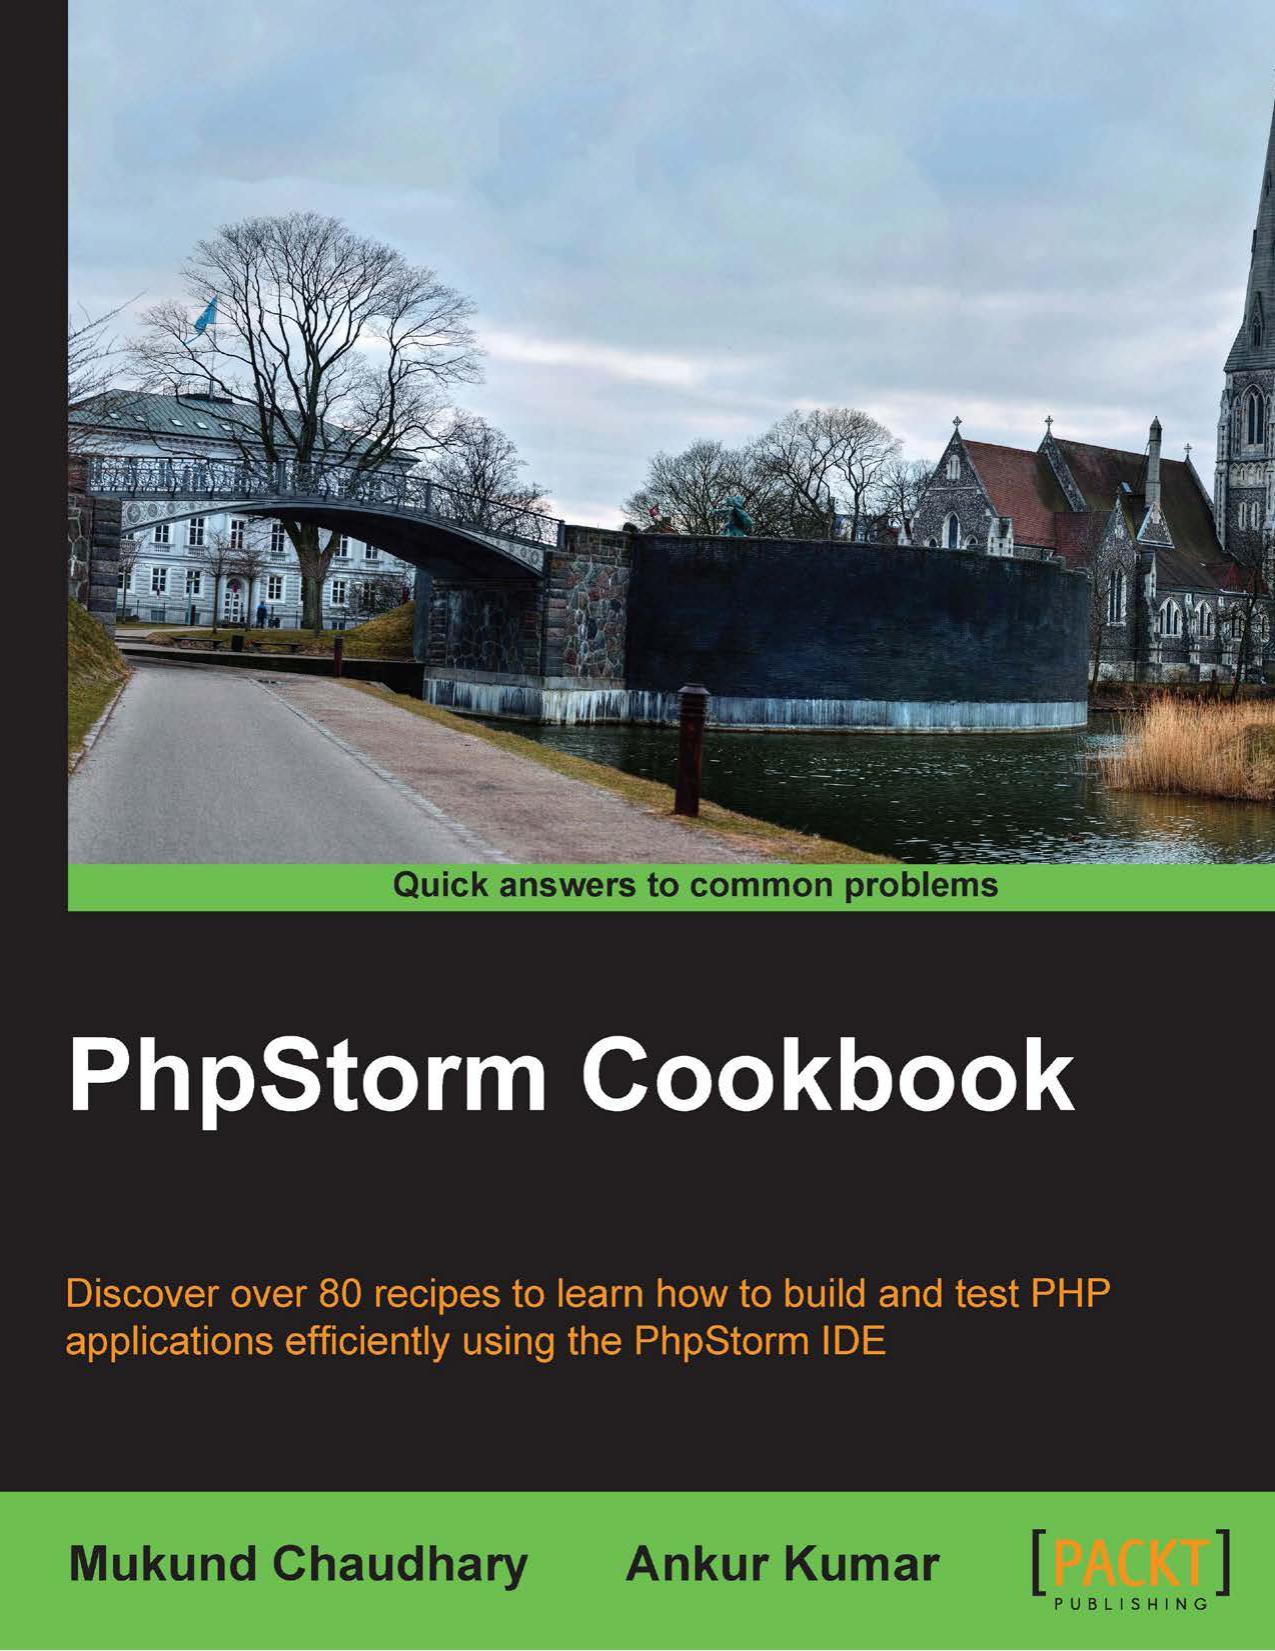 PhpStorm Cookbook free download